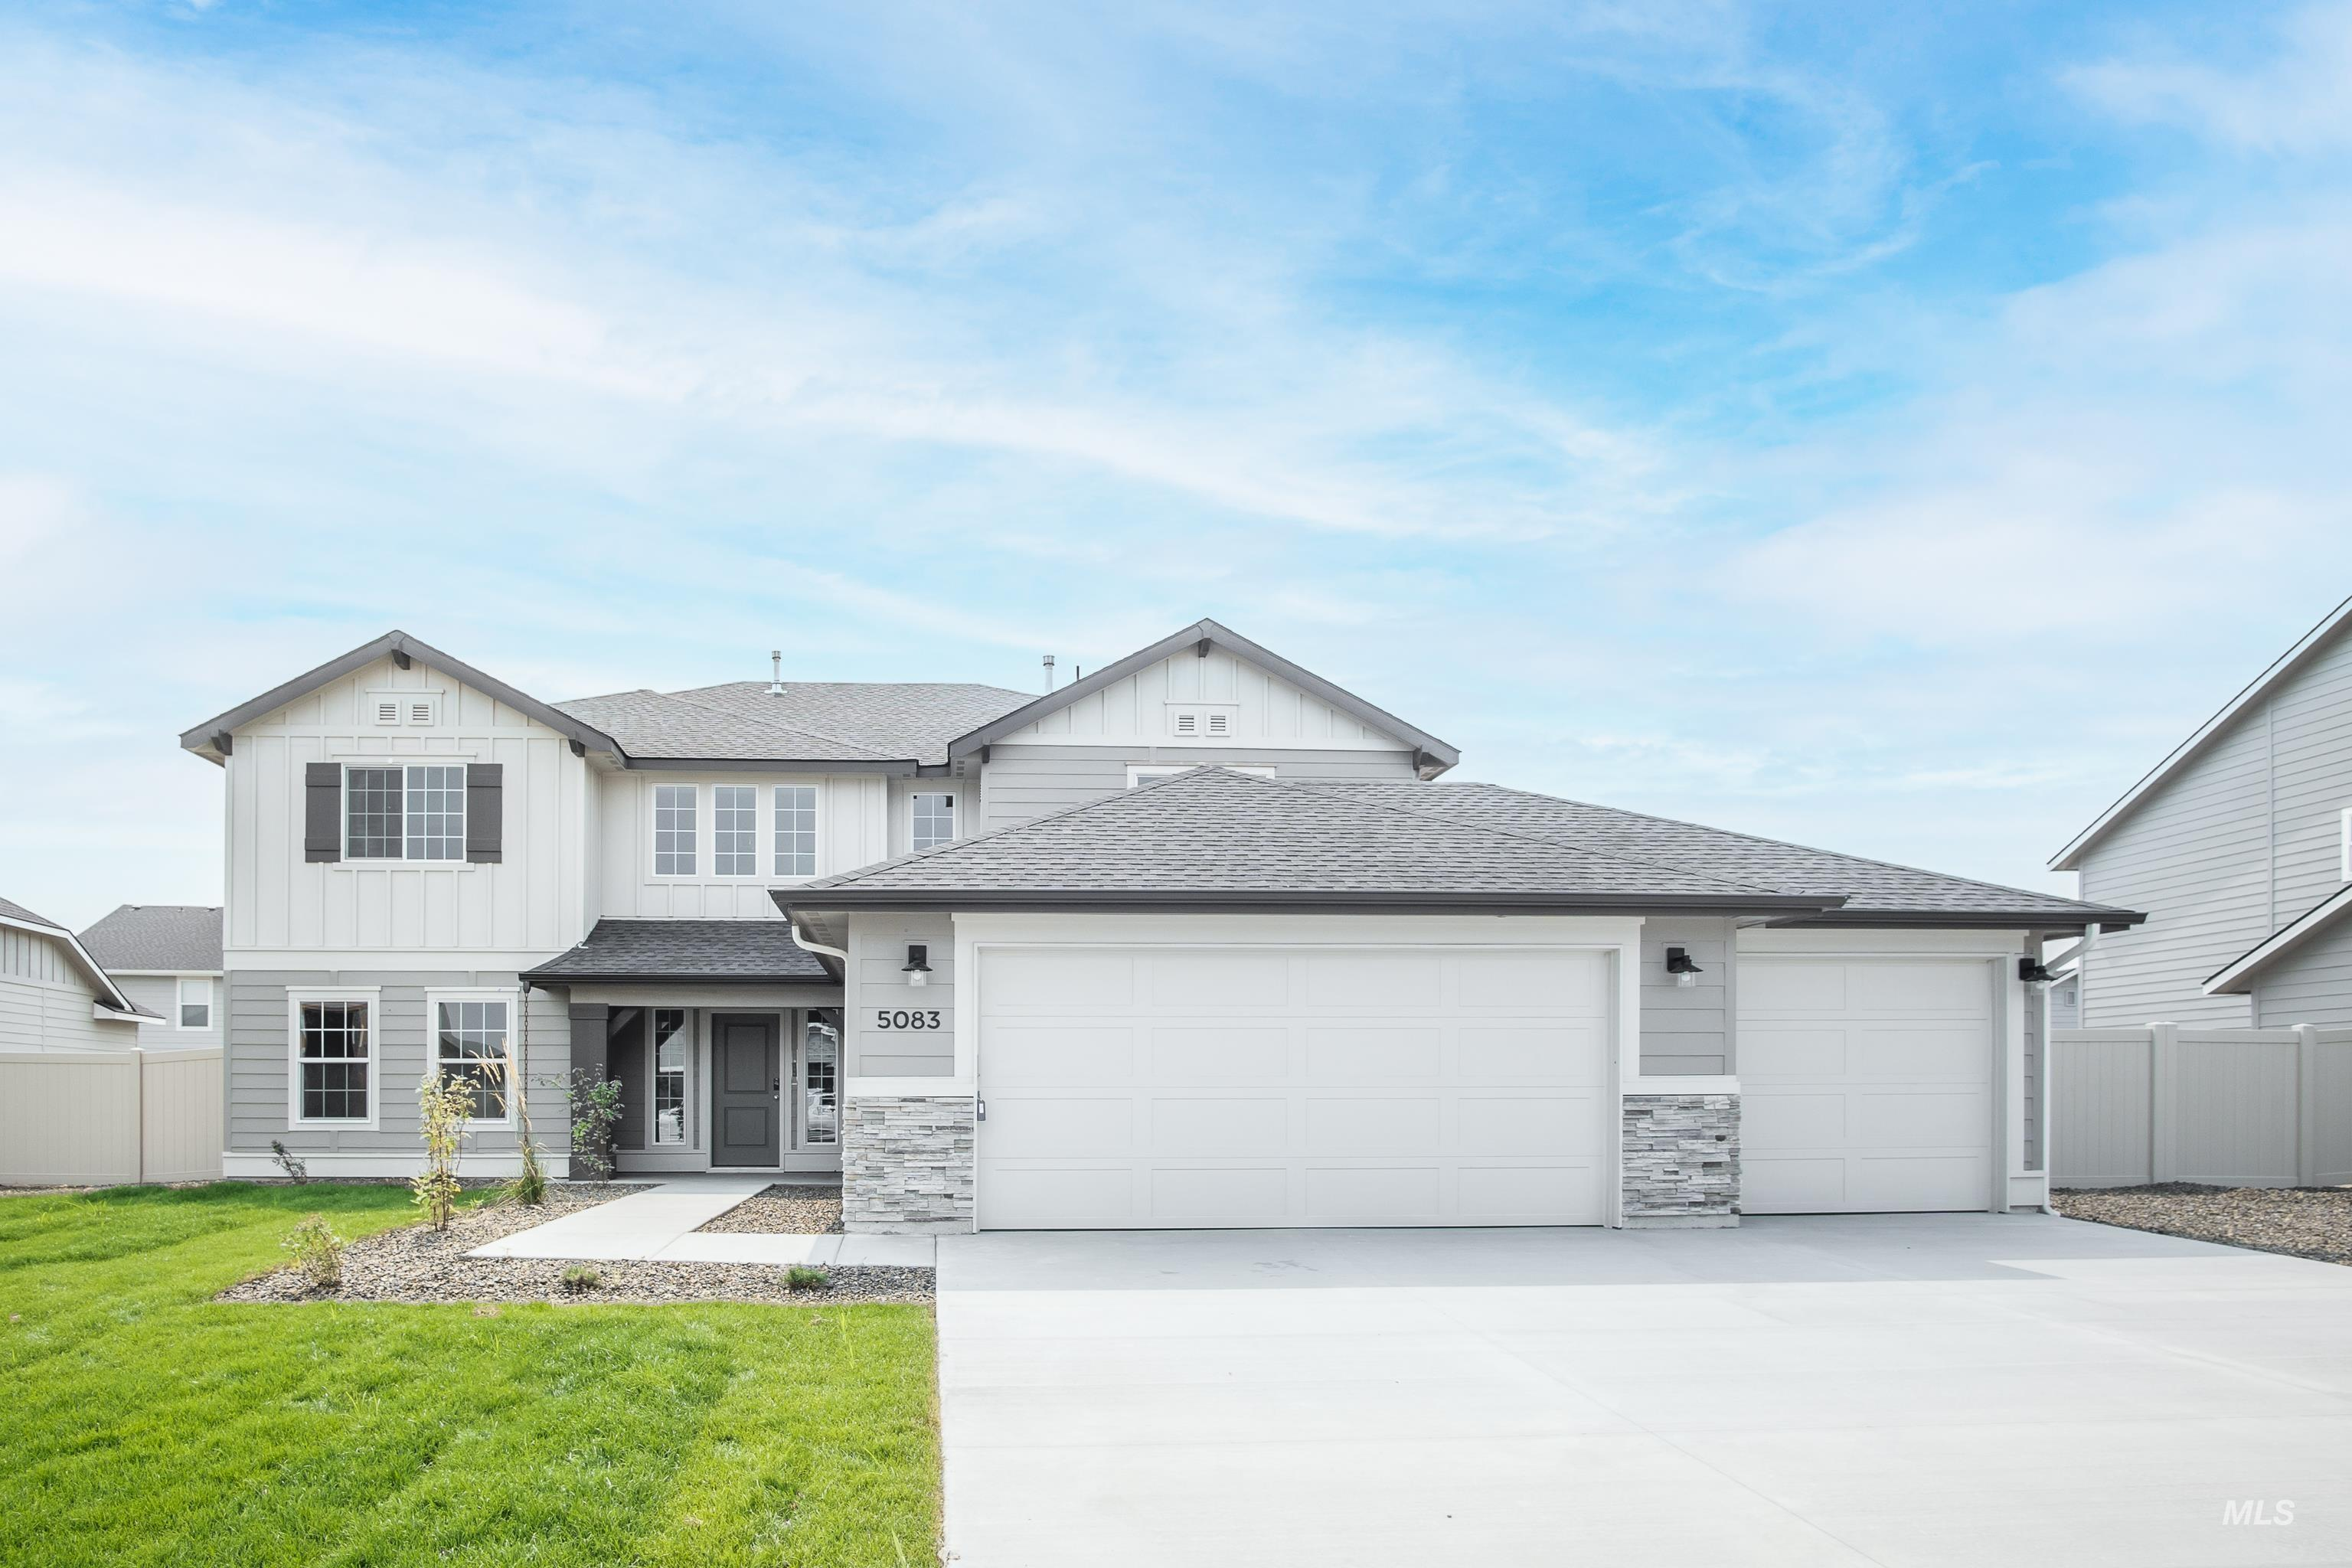 Get $35k with our Buy Now, Get More Promo NOW thru 7/31. Want to tour this home NOW? Get on-demand access with TOUR NOW. The Milano 3250 floor plan is grand! Relax in the great room or play in the upstairs loft. Master suite, separate soaker tub & shower, & a large walk-in closet. Full bath and bedroom downstairs. Price includes stainless kitchen appliances, quartz kitchen countertops, dual vanity, 3 car garage, and more! Corner lot. Photo Similar. RCE-923